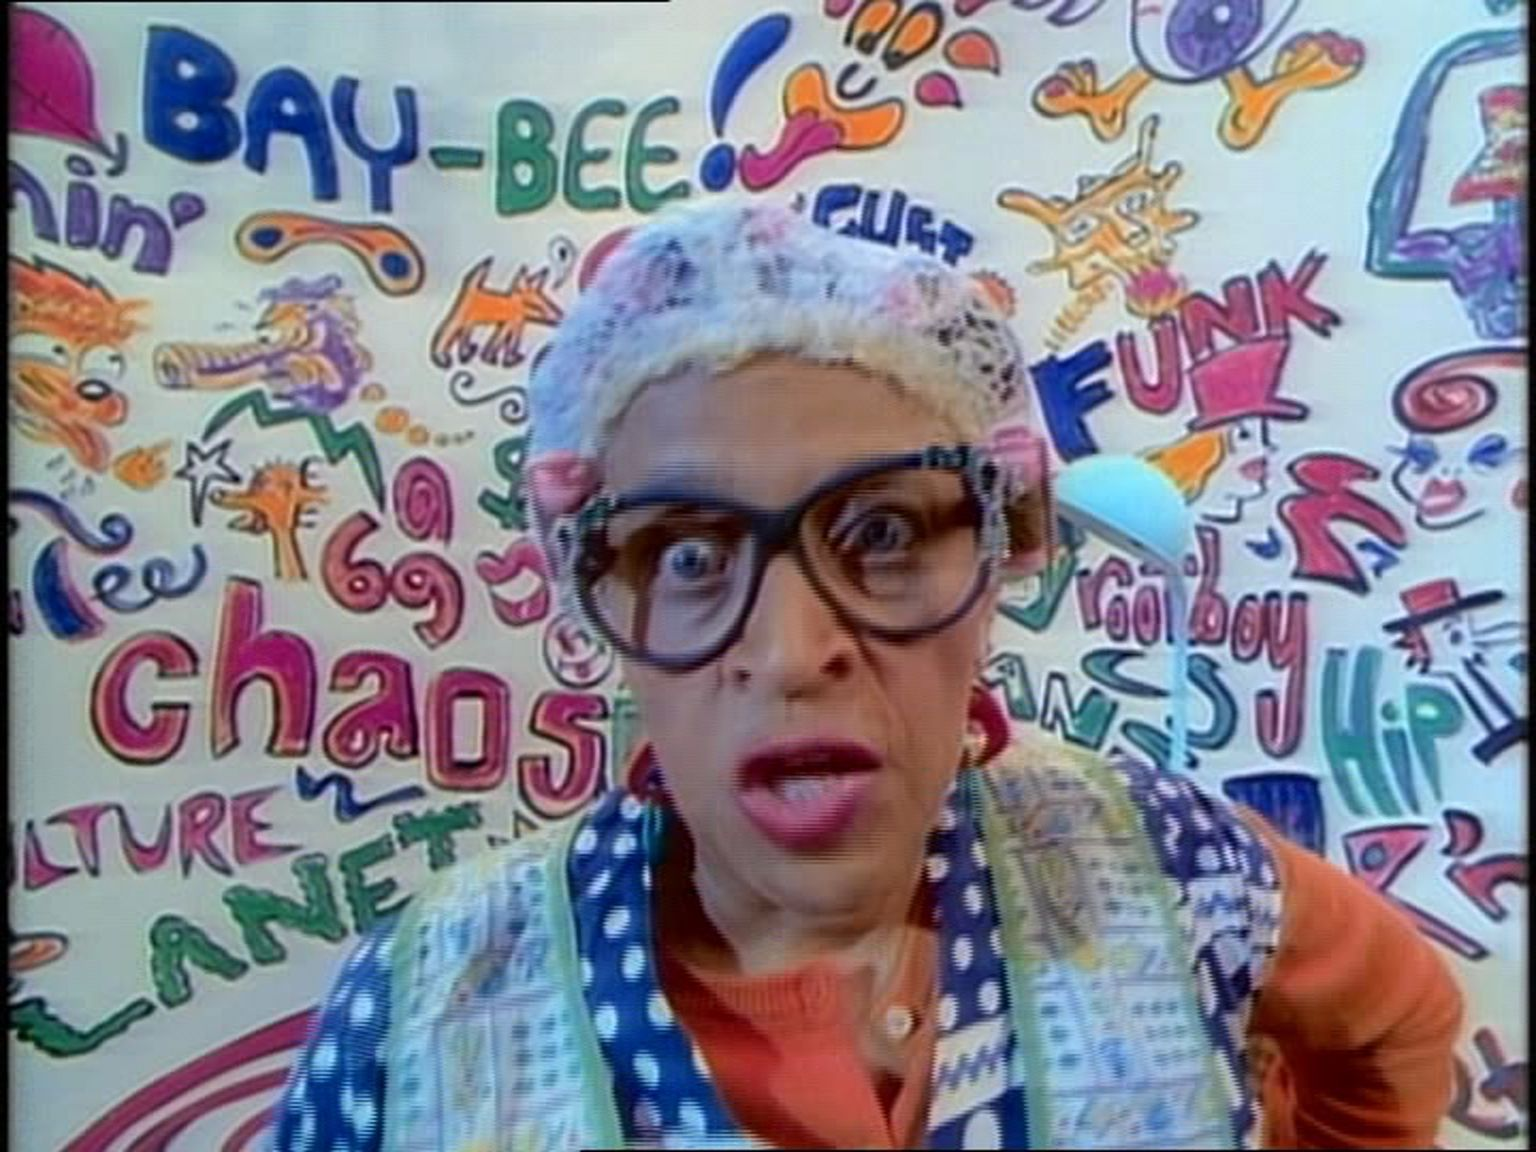 The mother from the Fresh Prince of Bel Air opening.